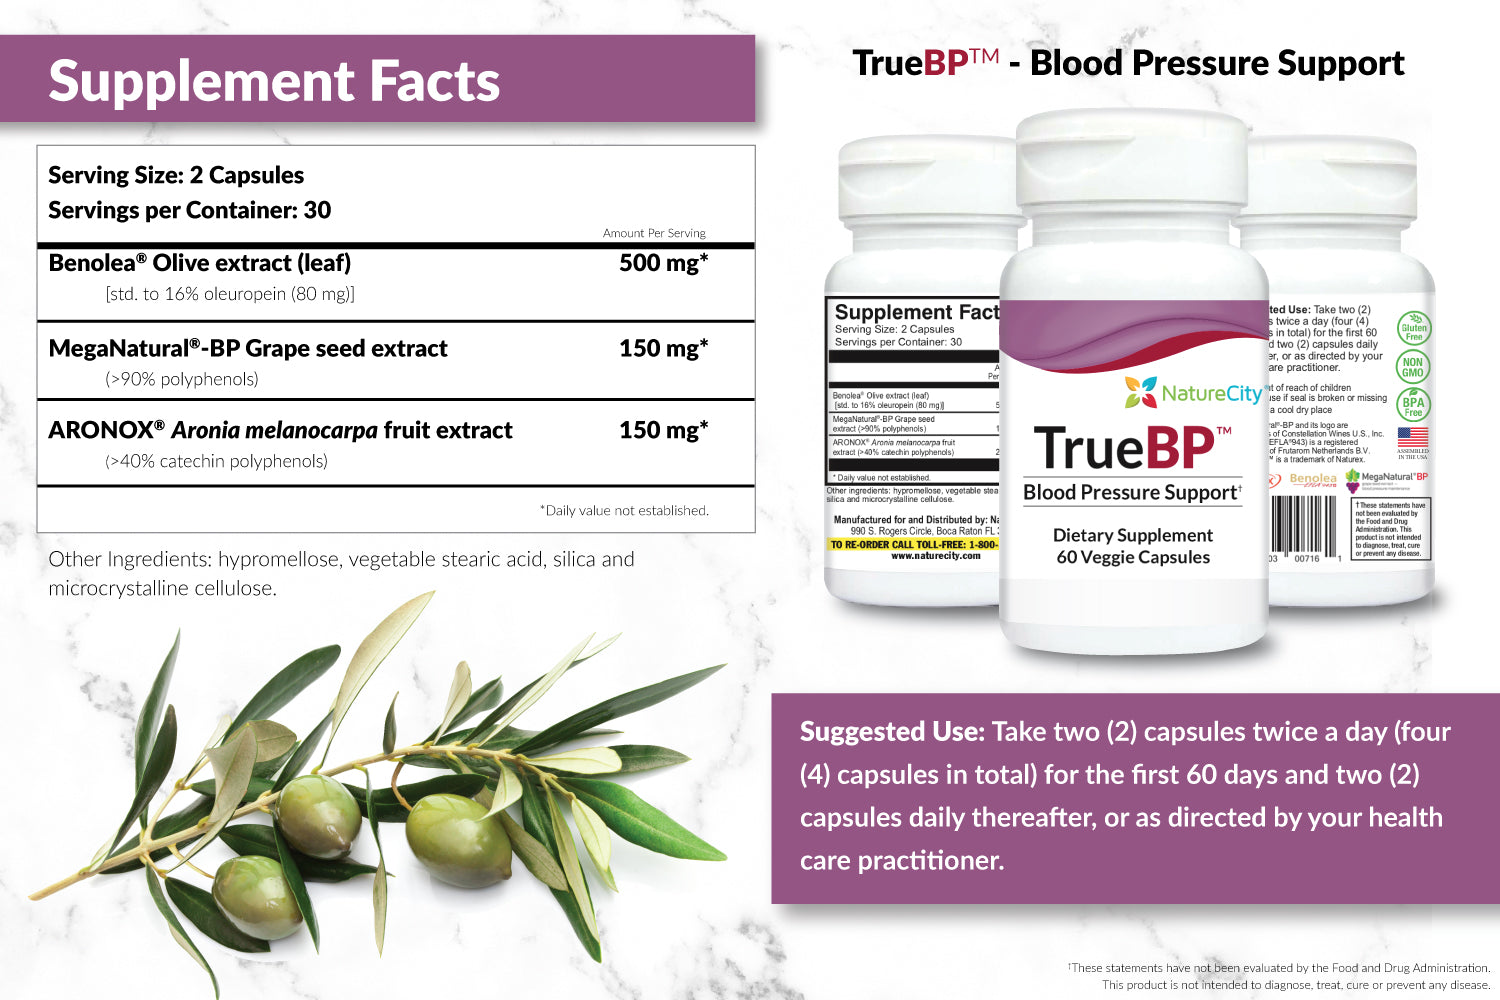 TrueBP Blood Pressure Supplement Facts and Suggested Use